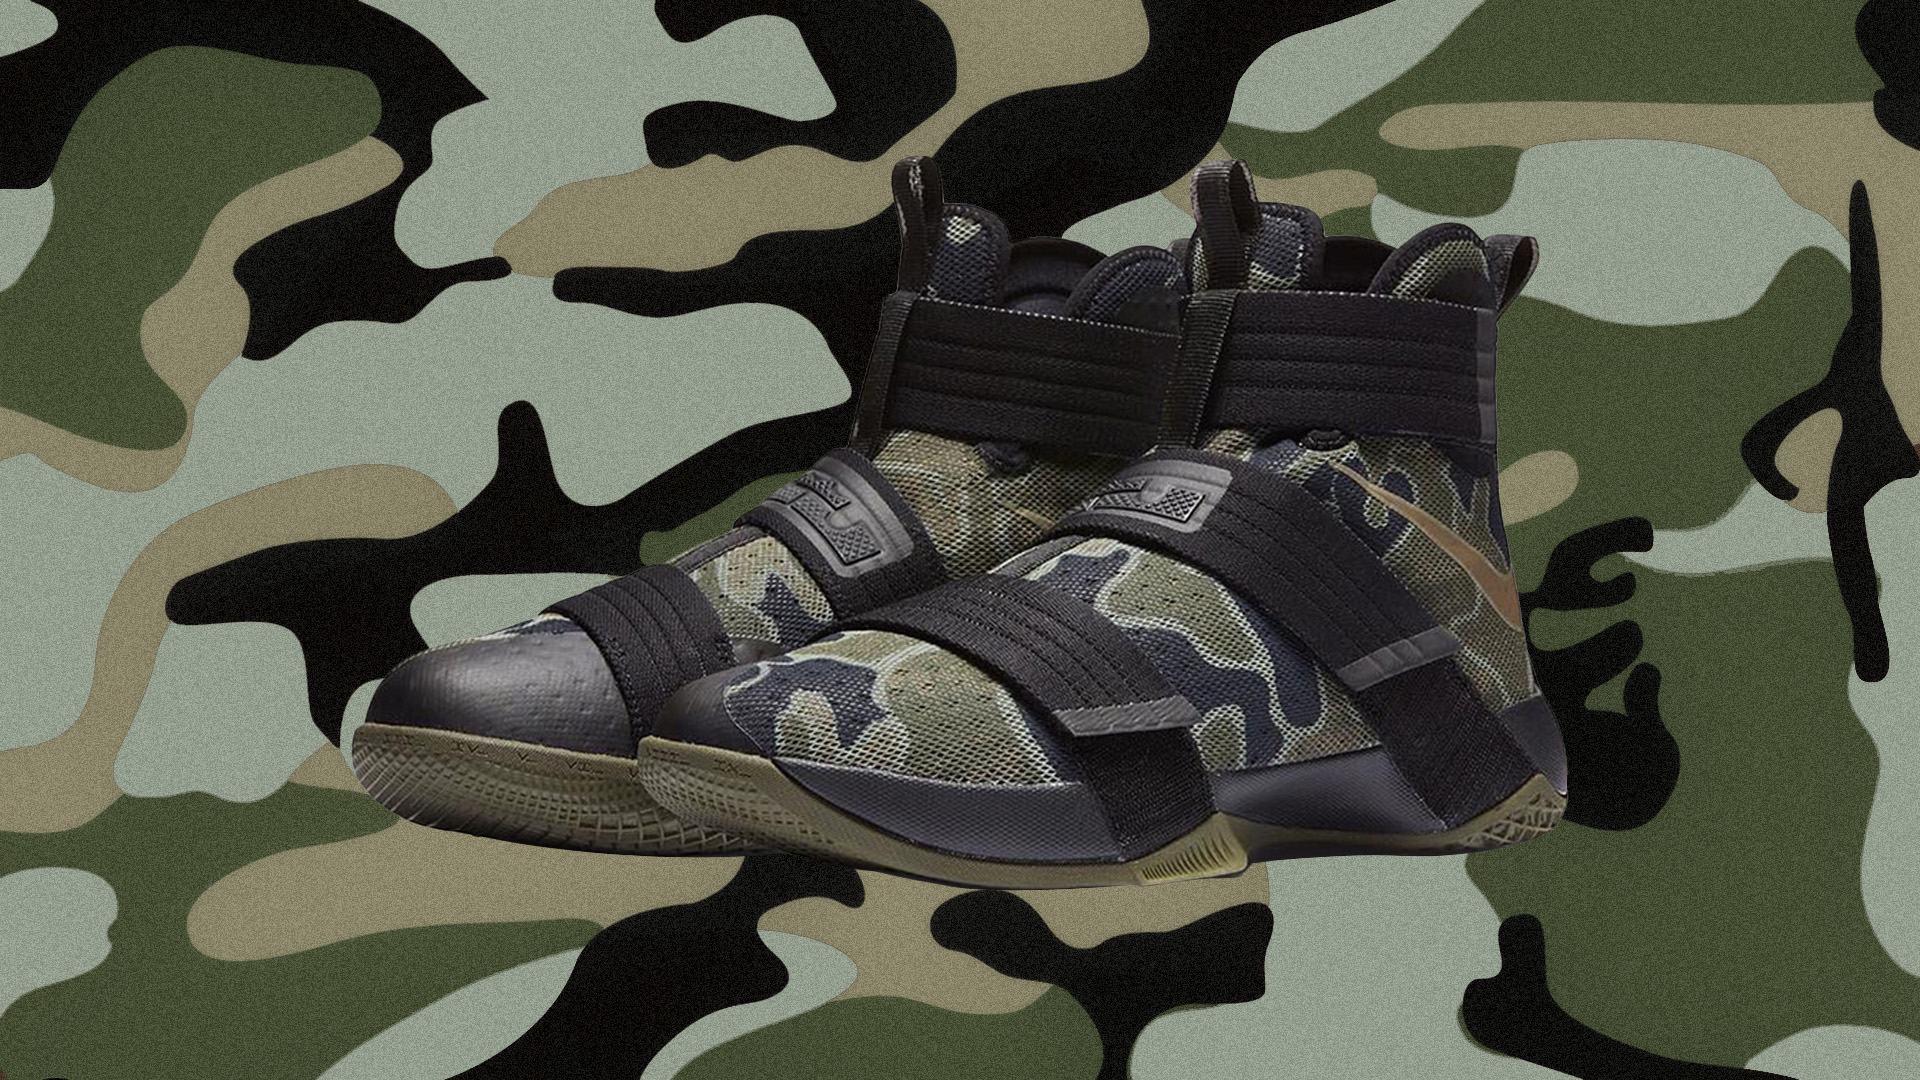 low priced f2a28 6b1c4 The Nike LeBron Soldier 10 SFG  Camo  is Available Now - WearTesters